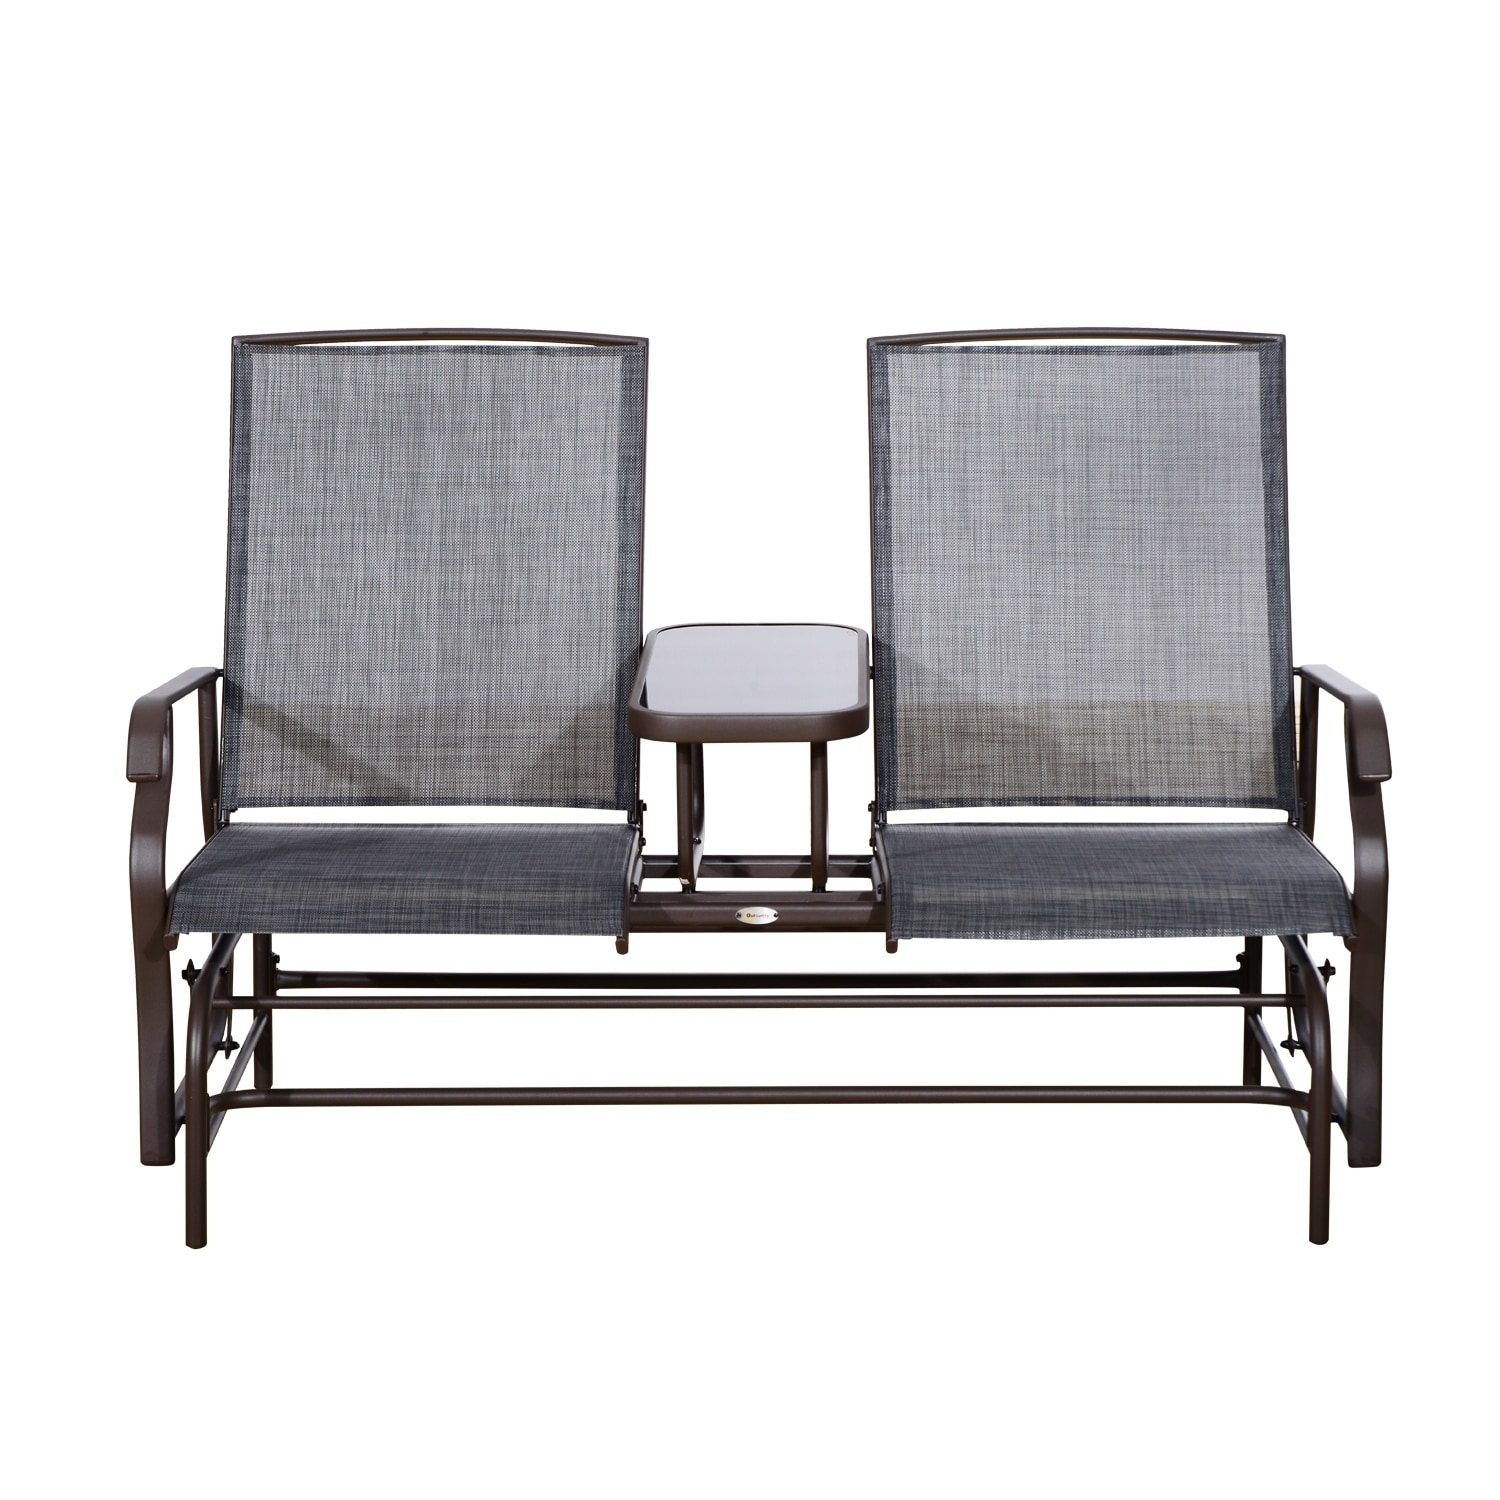 Outsunny Two Person Outdoor Mesh Fabric Patio Double Glider Chair With Center Table On Free Shipping Today 18013207